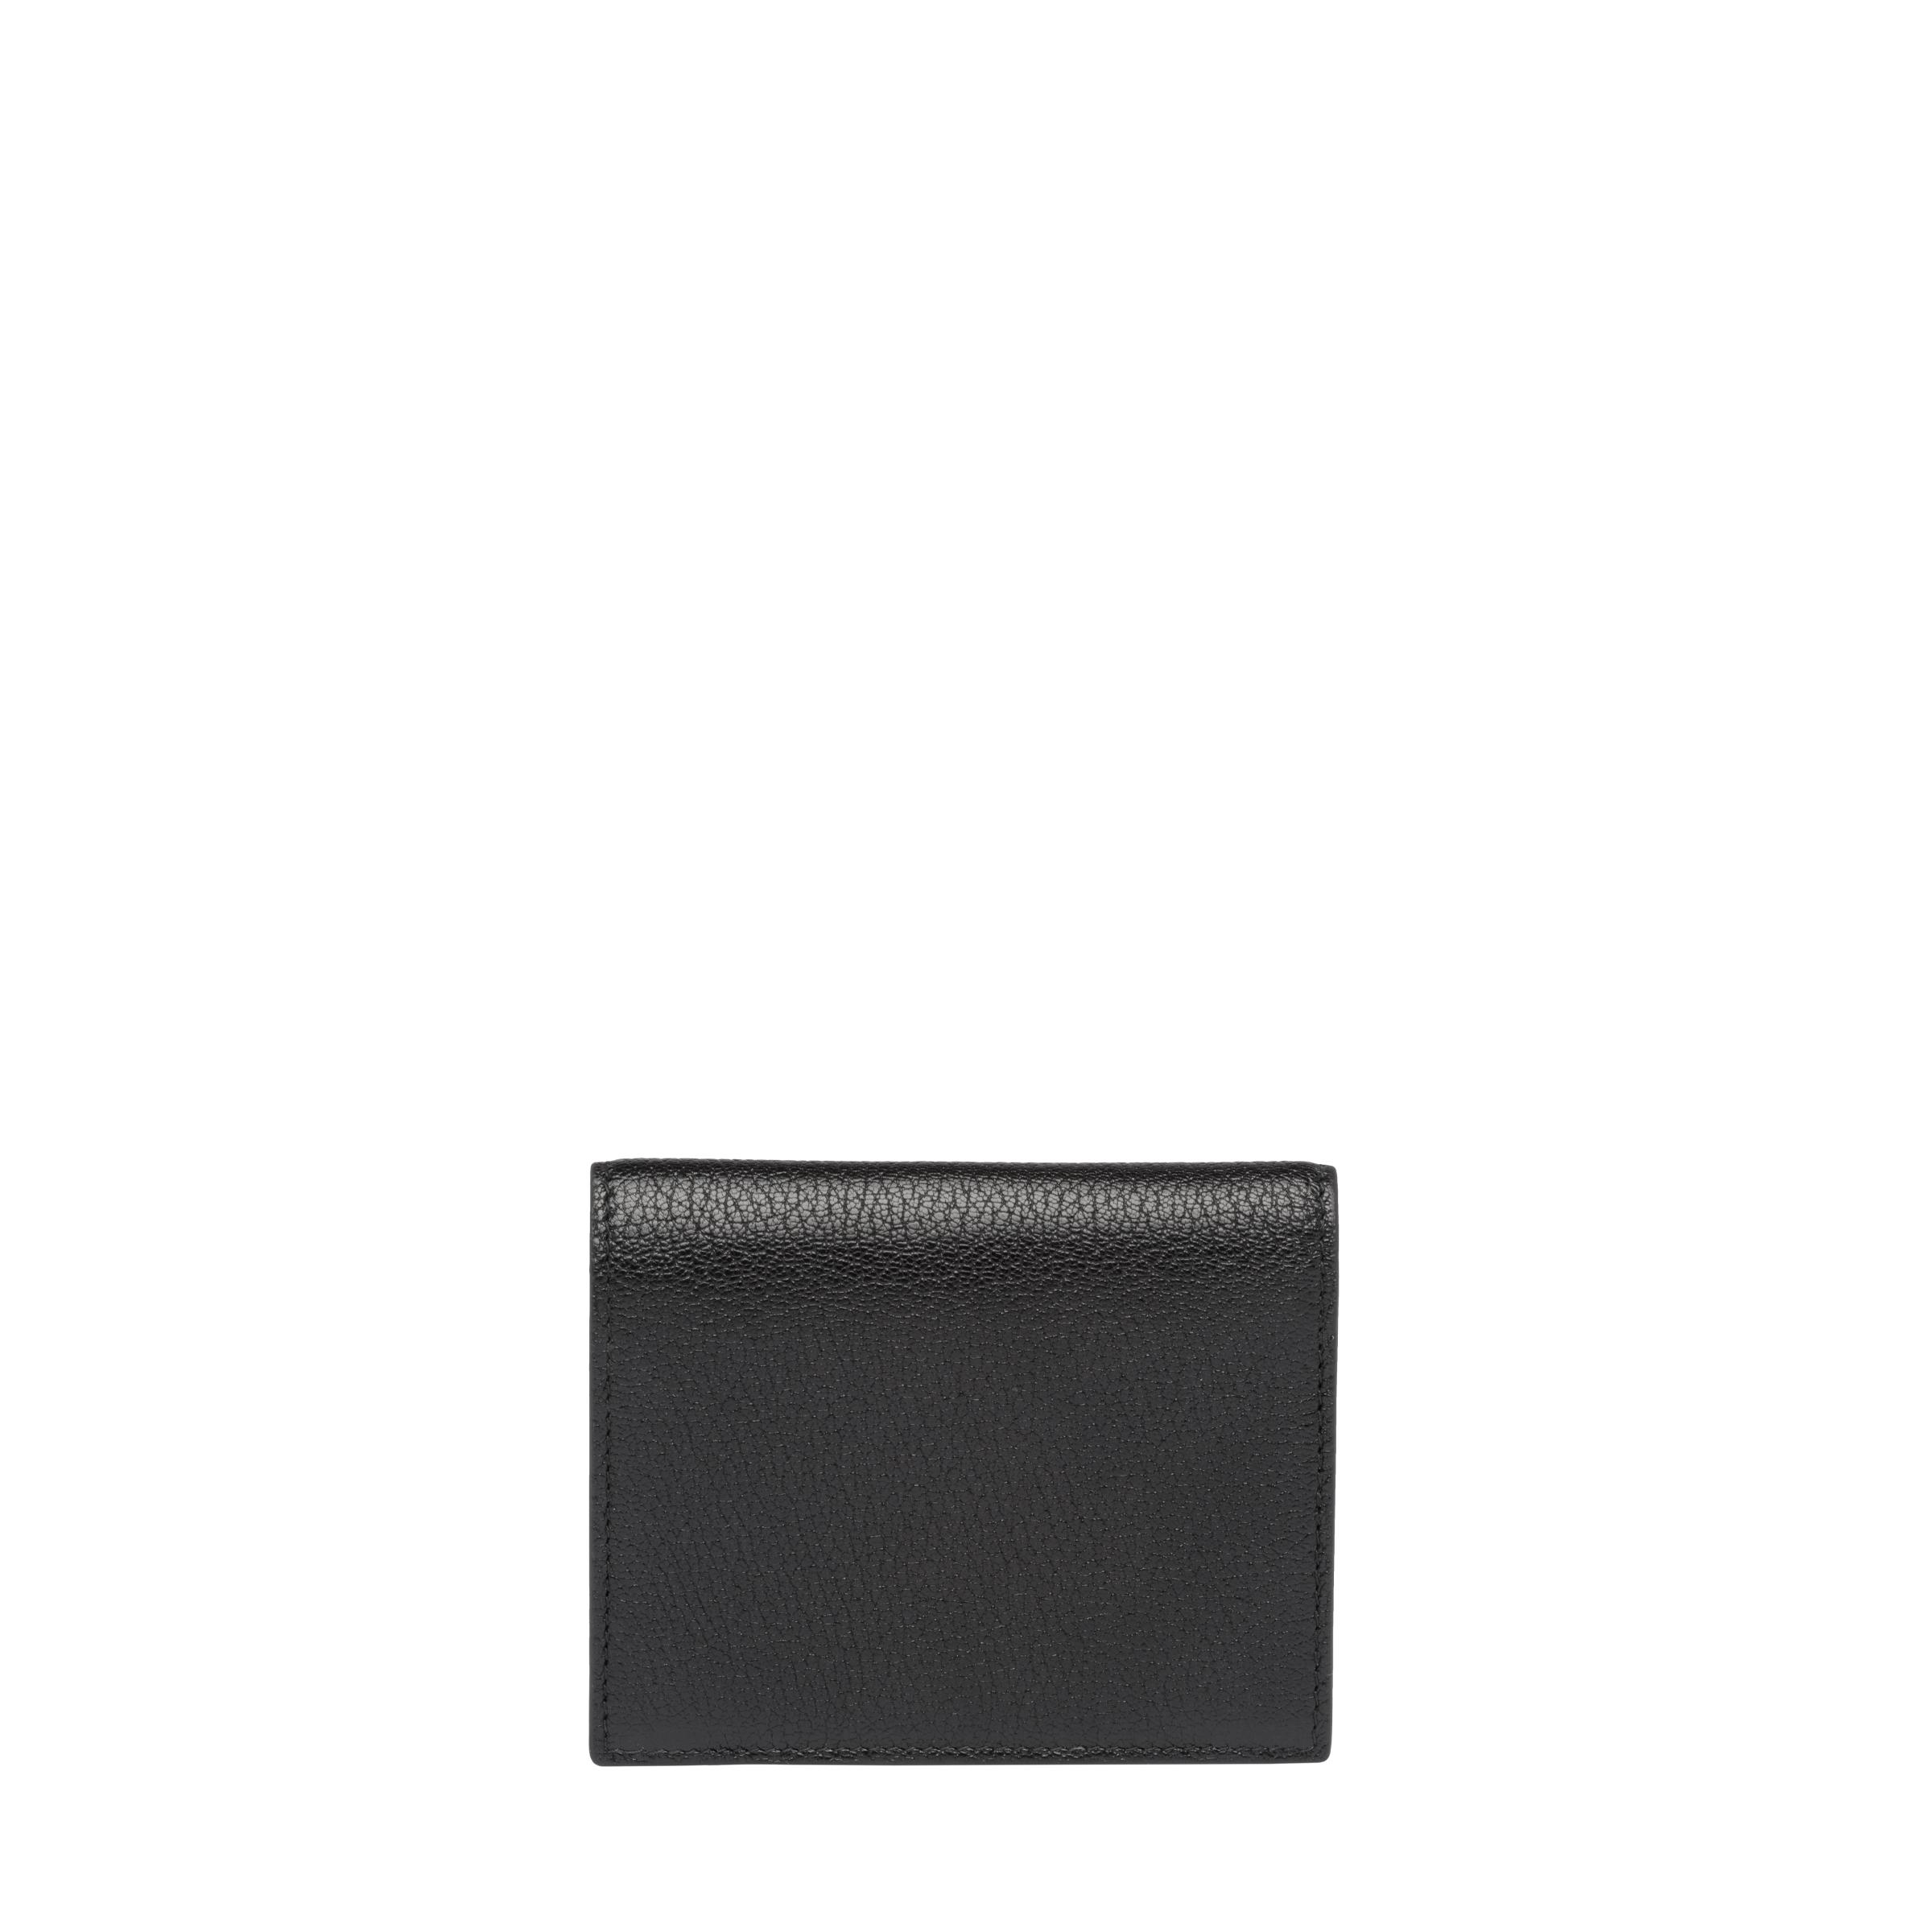 Madras Colour Leather Wallet Women Black/fiery Red 3